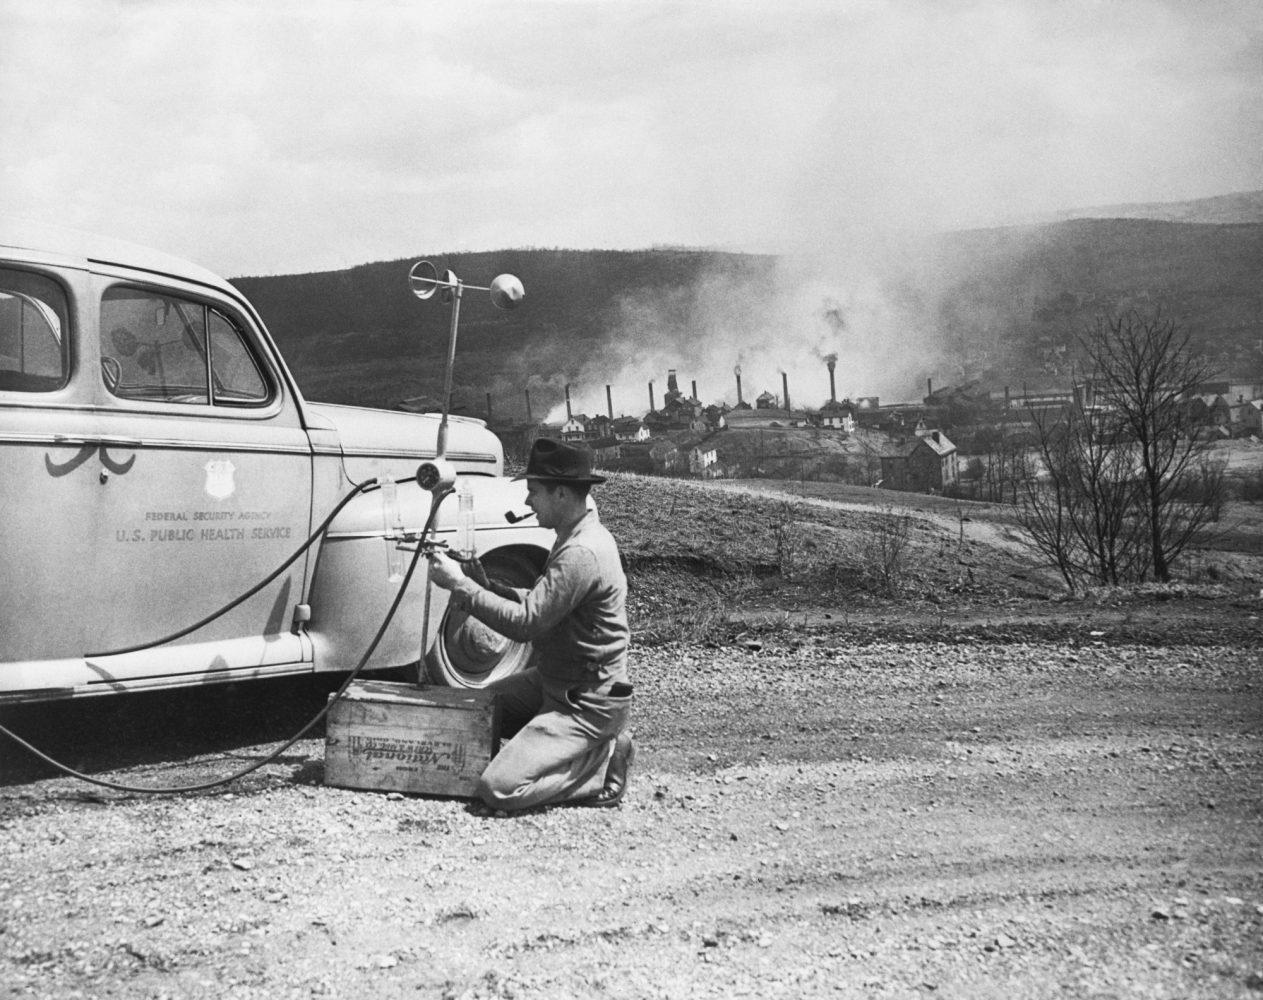 A U.S. Public Health Service worker measures samples of air pollution in Donora, PA.